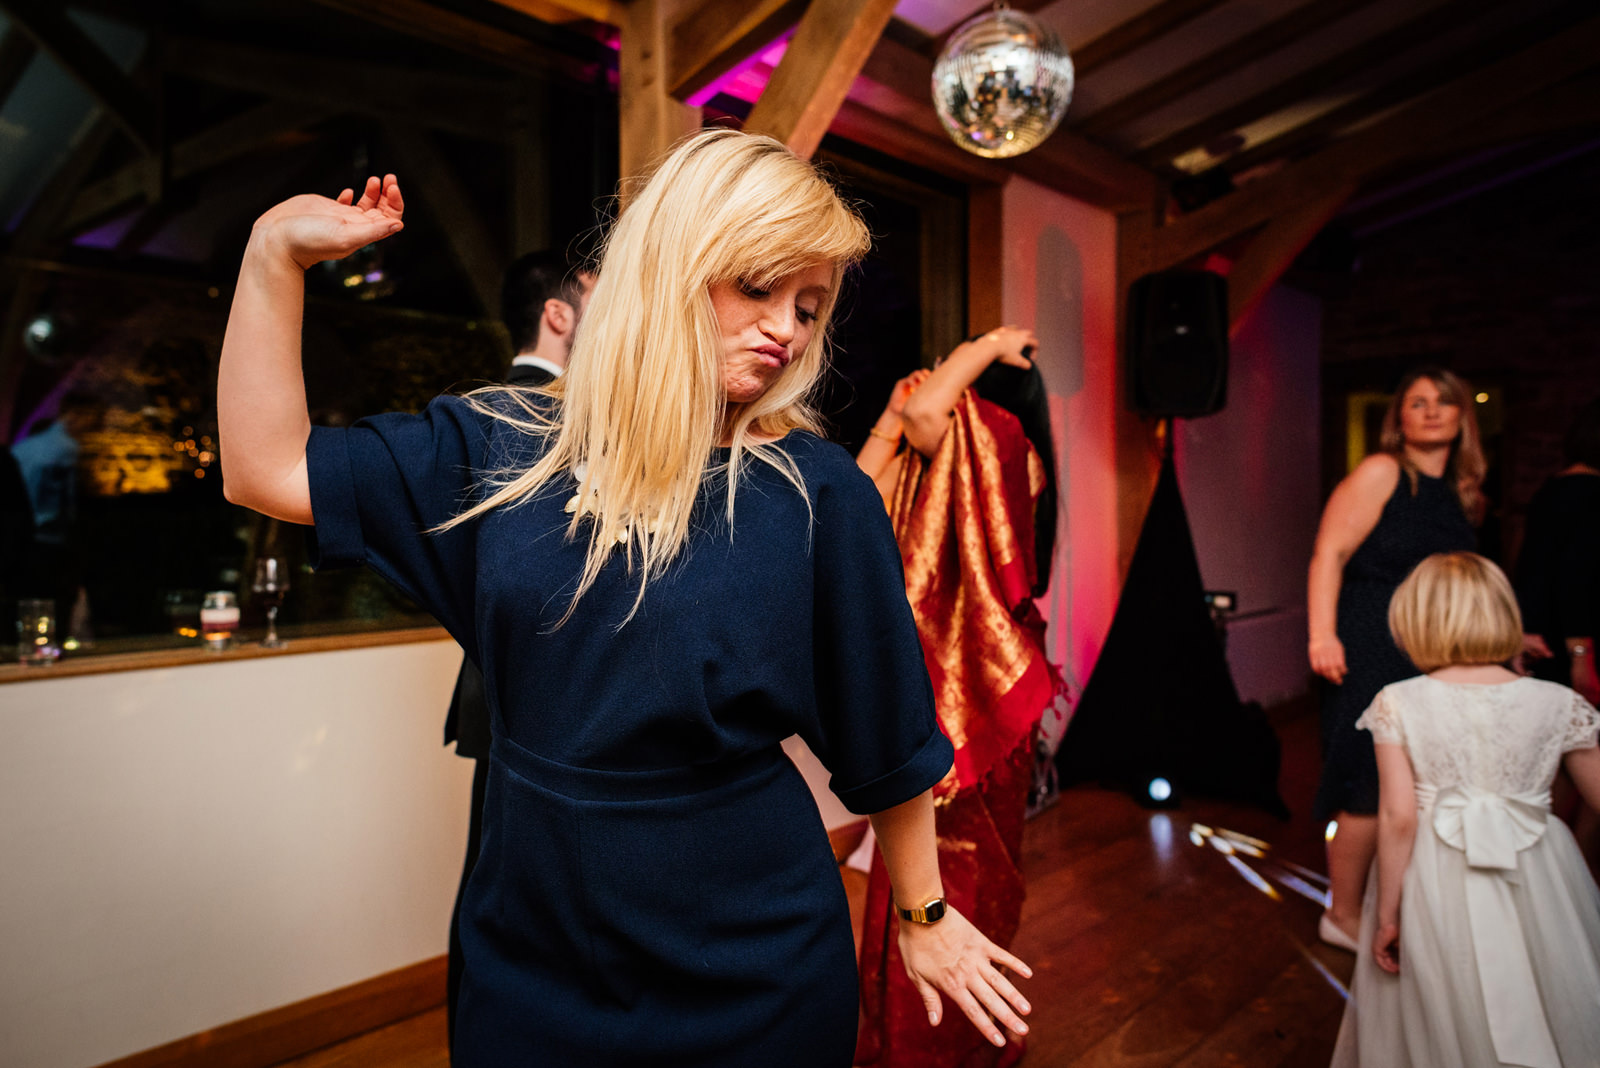 guest throwing shapes on the dance floor